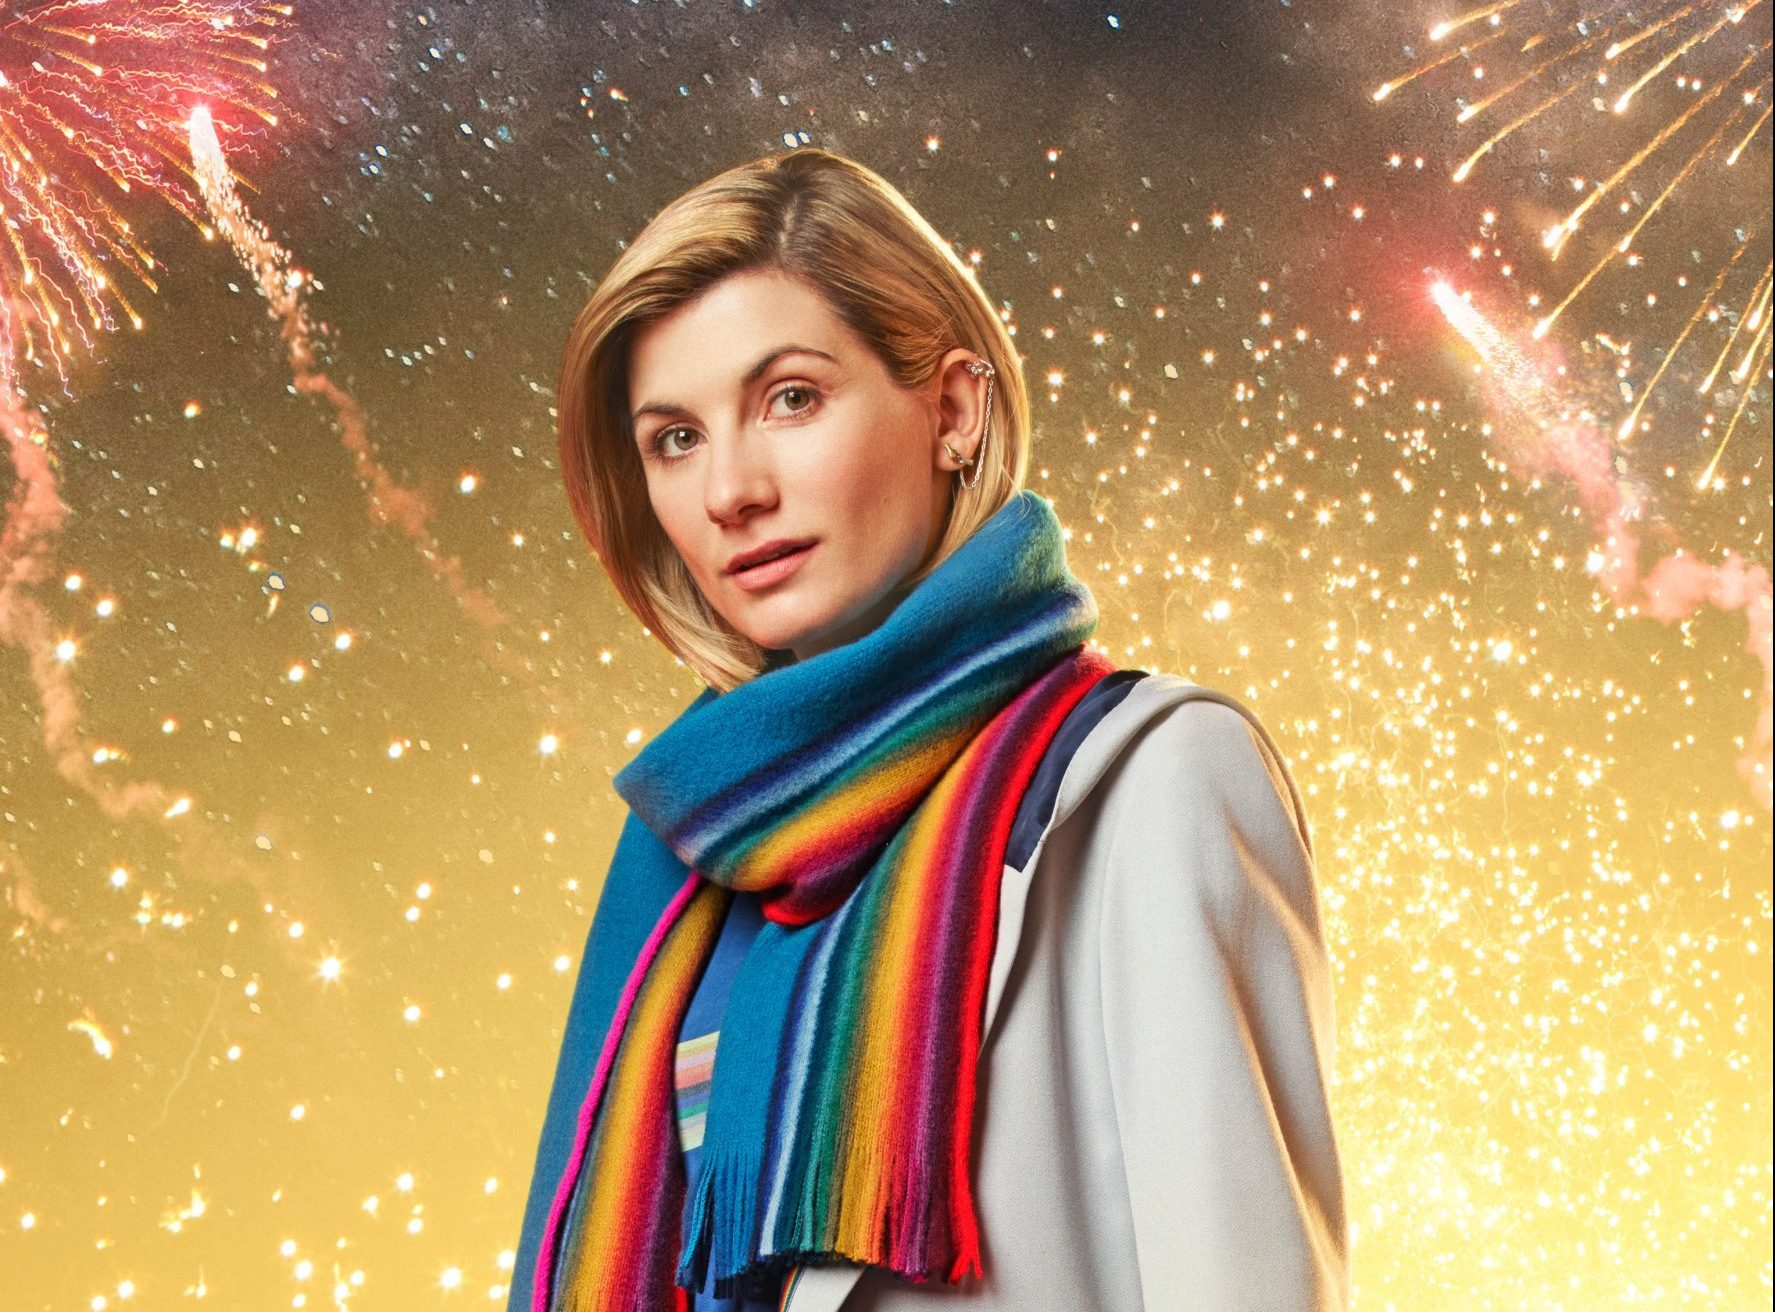 WARNING: Embargoed for publication until 00:00:01 on 27/11/2018 - Programme Name: Doctor Who - TX: n/a - Episode: n/a (No. n/a) - Picture Shows: **Strictly Embargoed until 27/11/2018 00:00:01** The Doctor (JODIE WHITTAKER) - (C) BBC/ BBC Studios - Photographer: Henrik Knudson